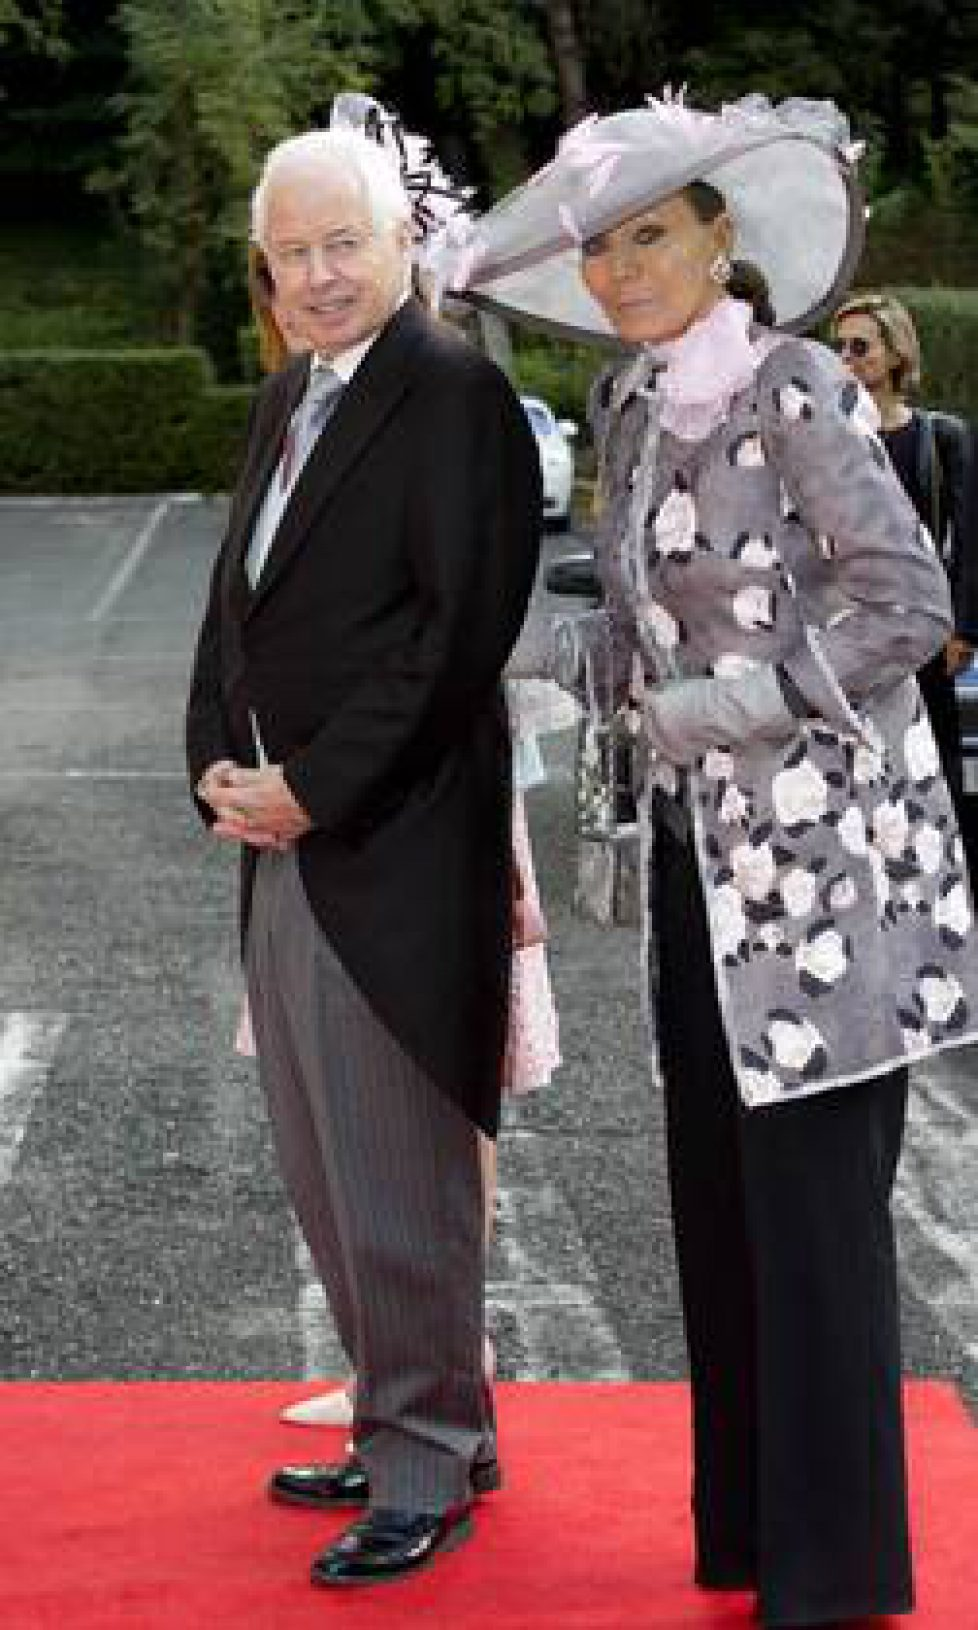 Prince Philipp and Princess Isabelle of Liechtenstein Royal wedding of HRH Crown Prince Leka II of T